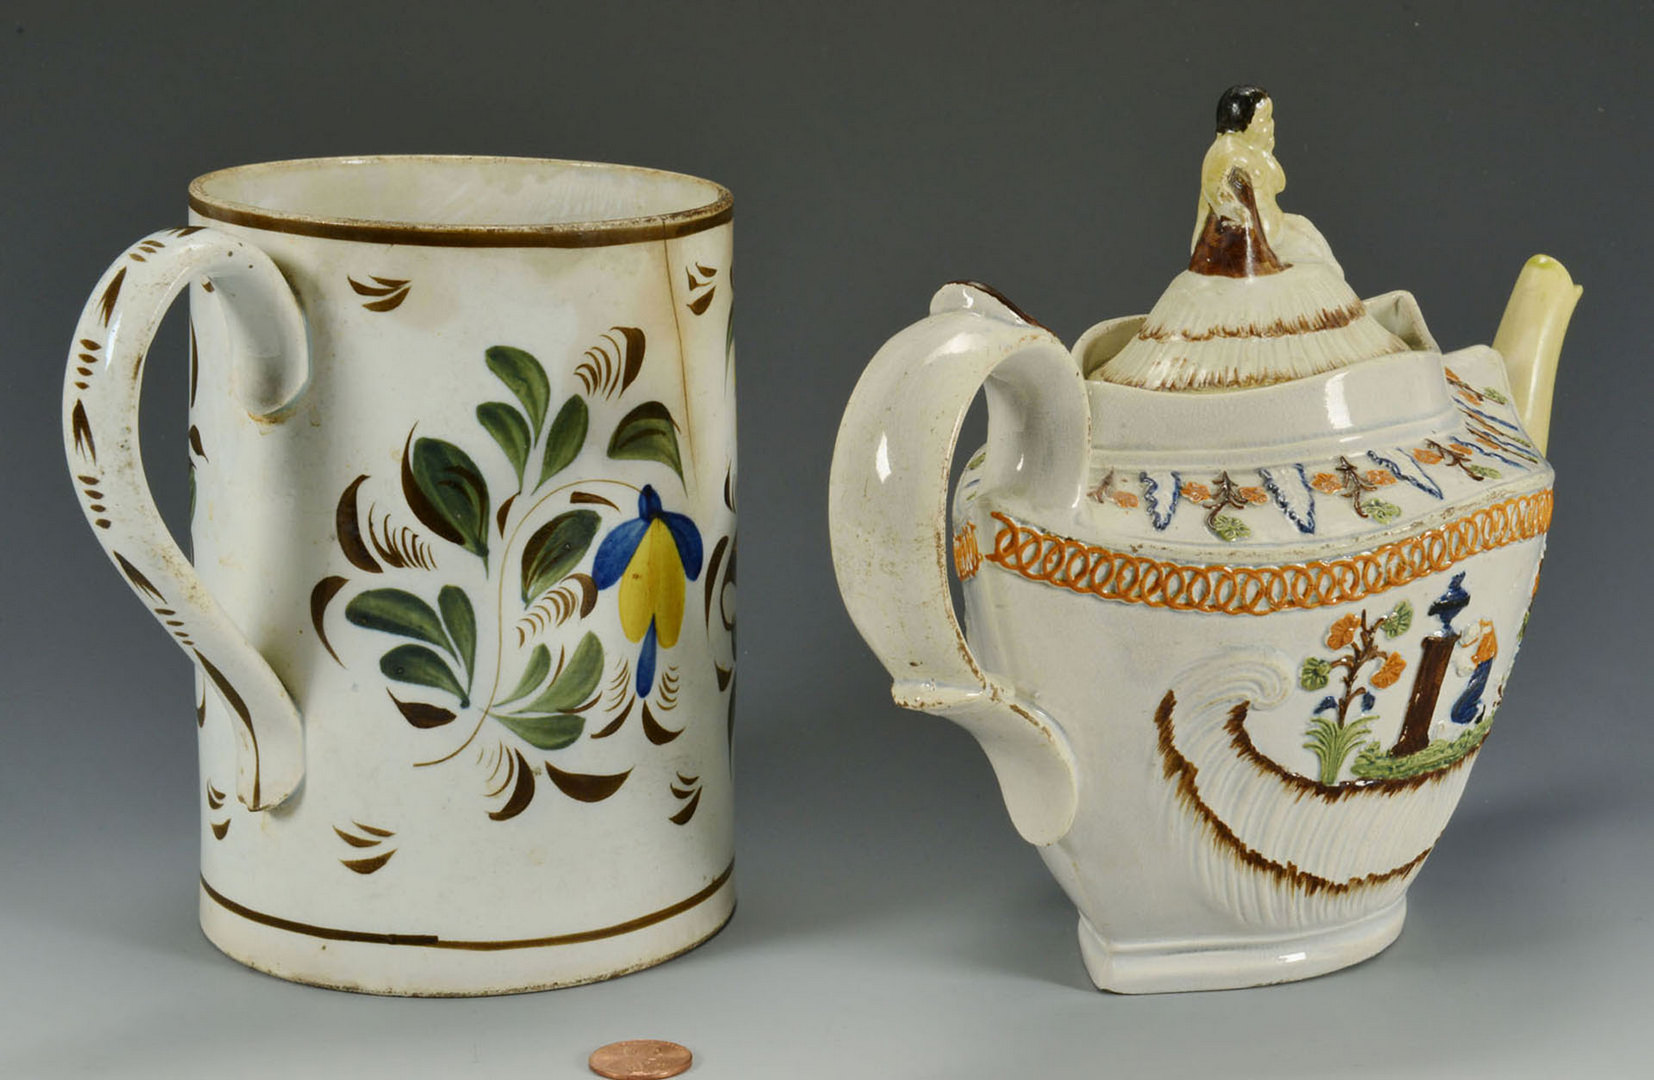 Lot 98: Prattware teapot and pearlware cann